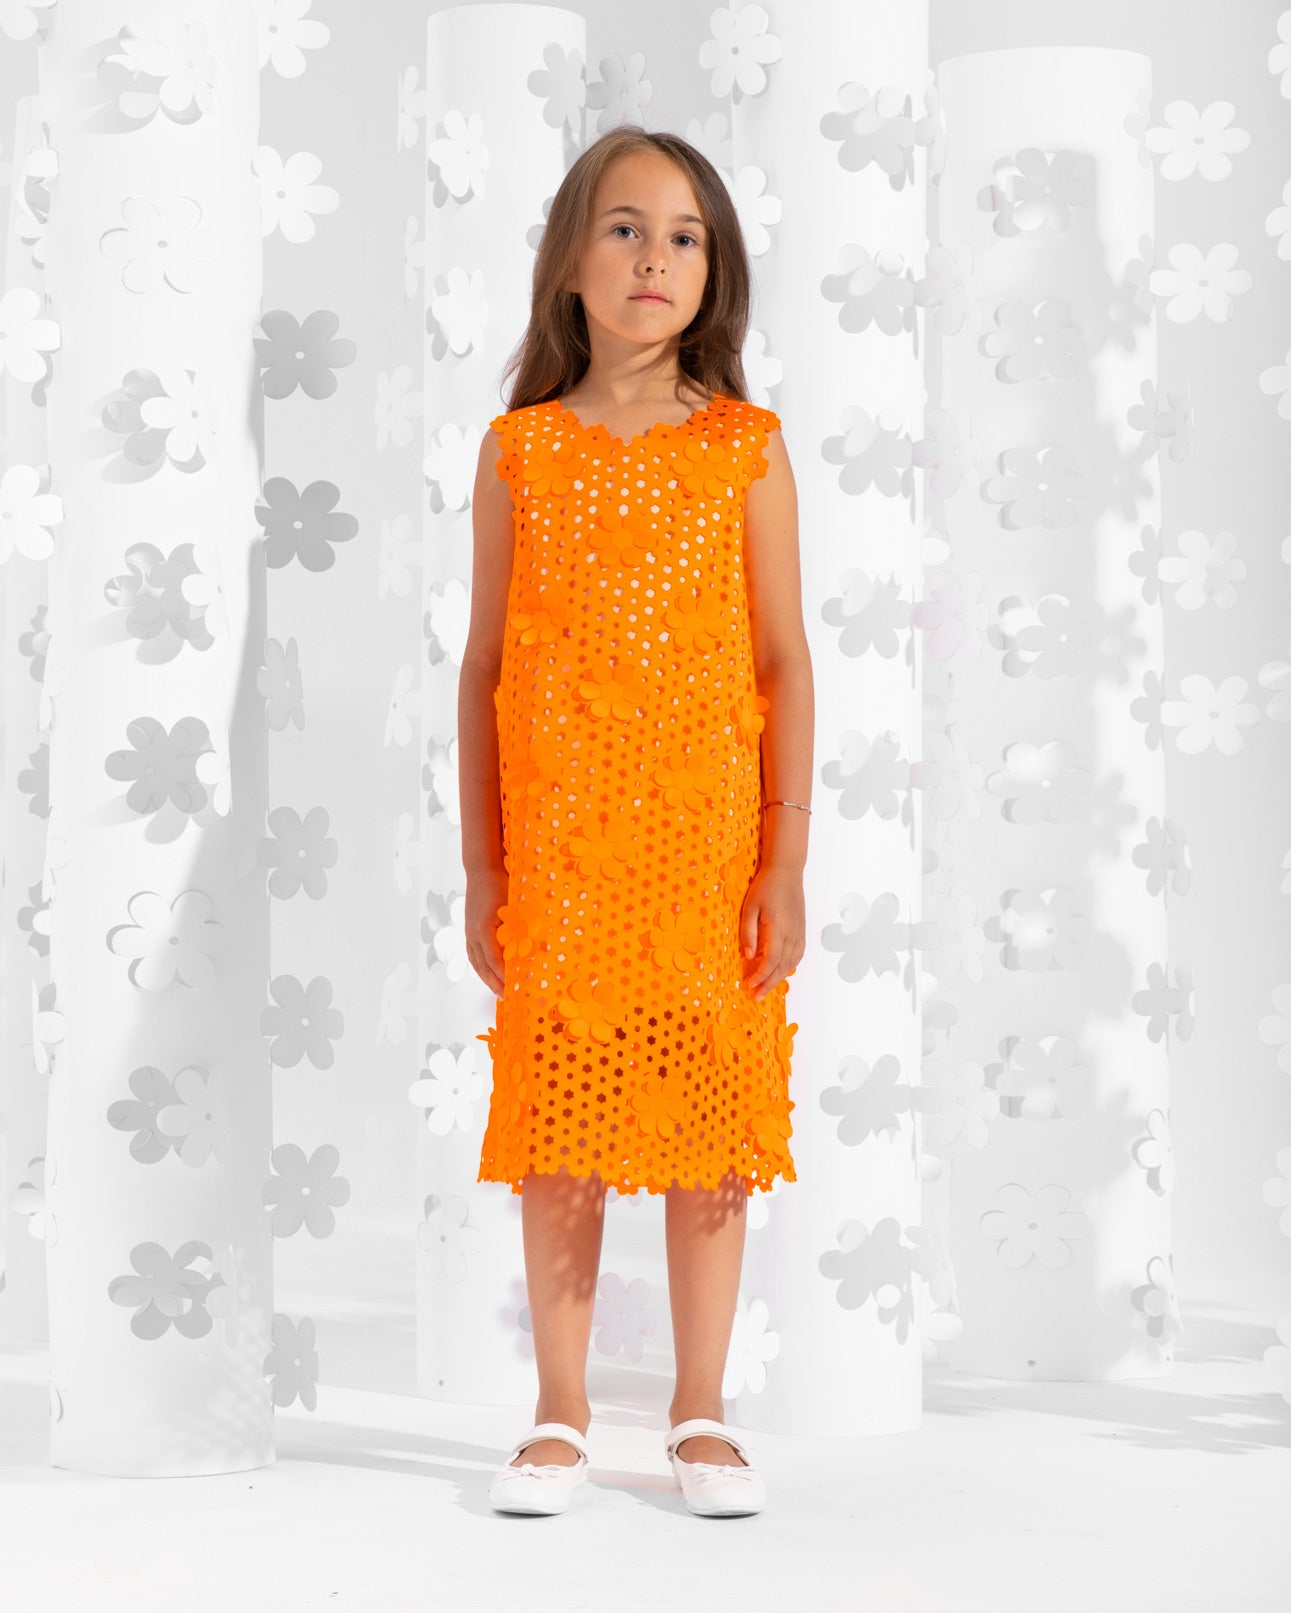 Sleeveless laser-cut dress trimmed with floral appliques